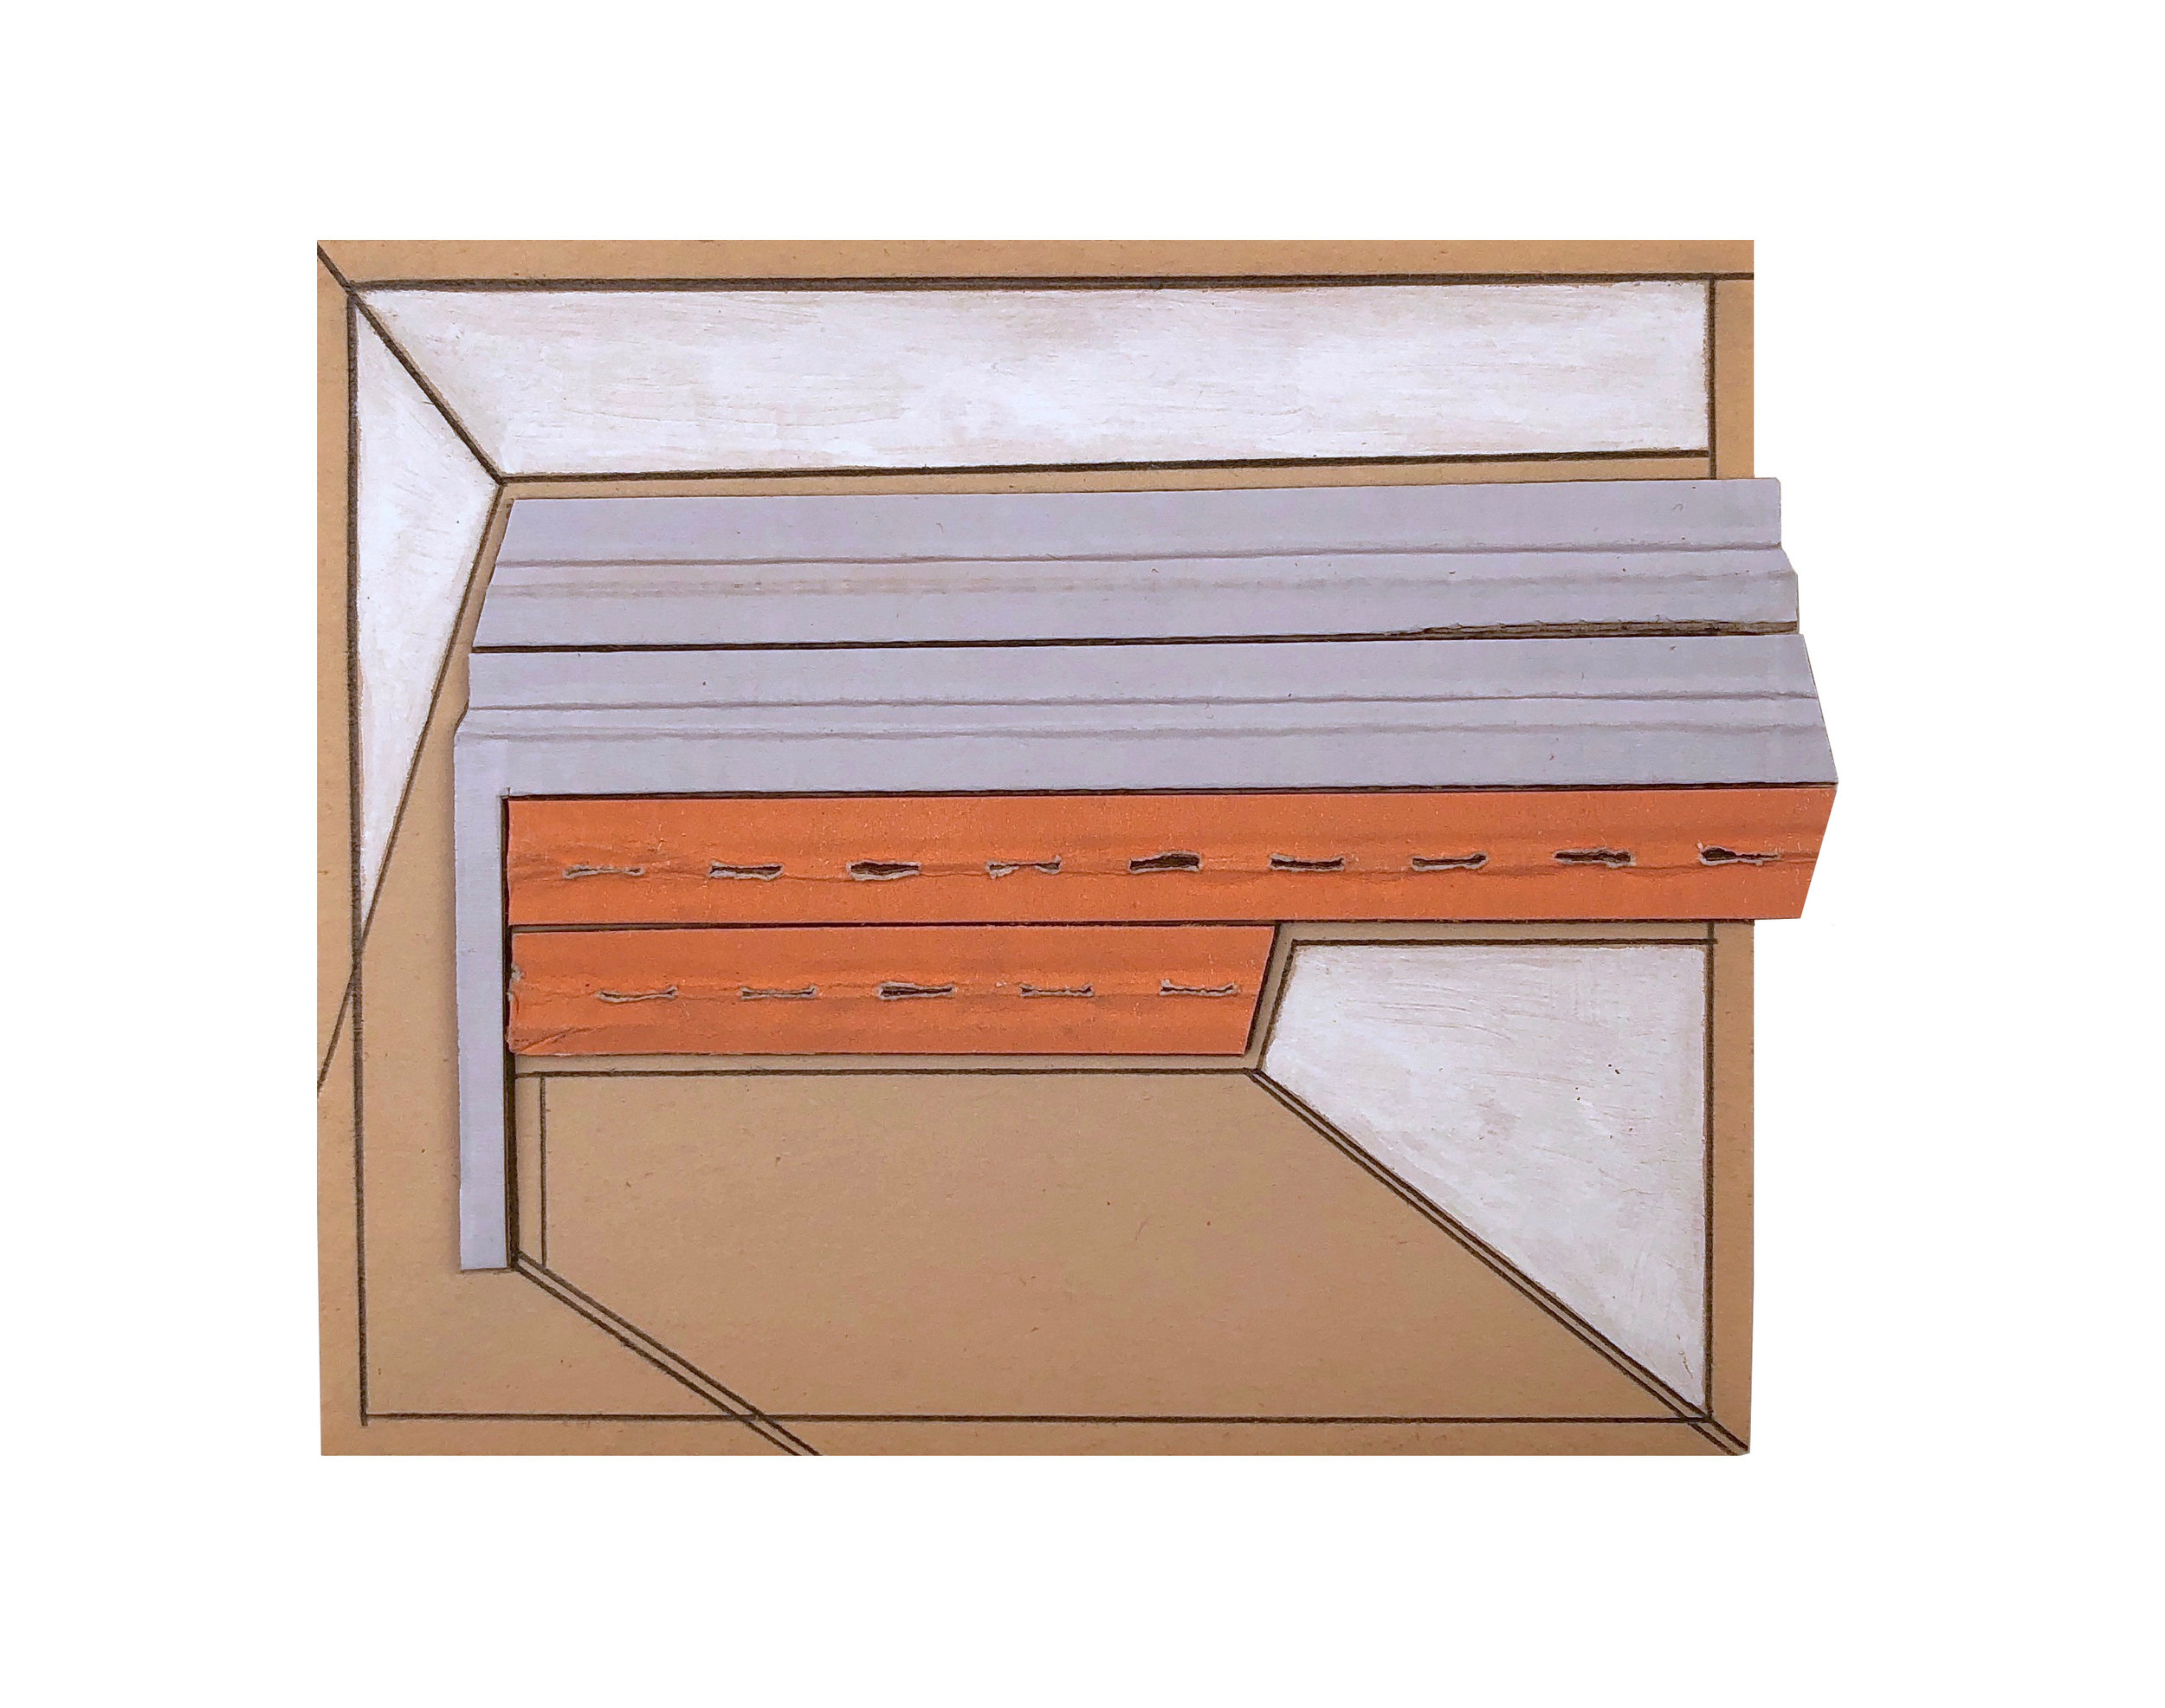 2019  cardboard, acrylic, pencil on paper  4 1/2 x 5 1/2 inches